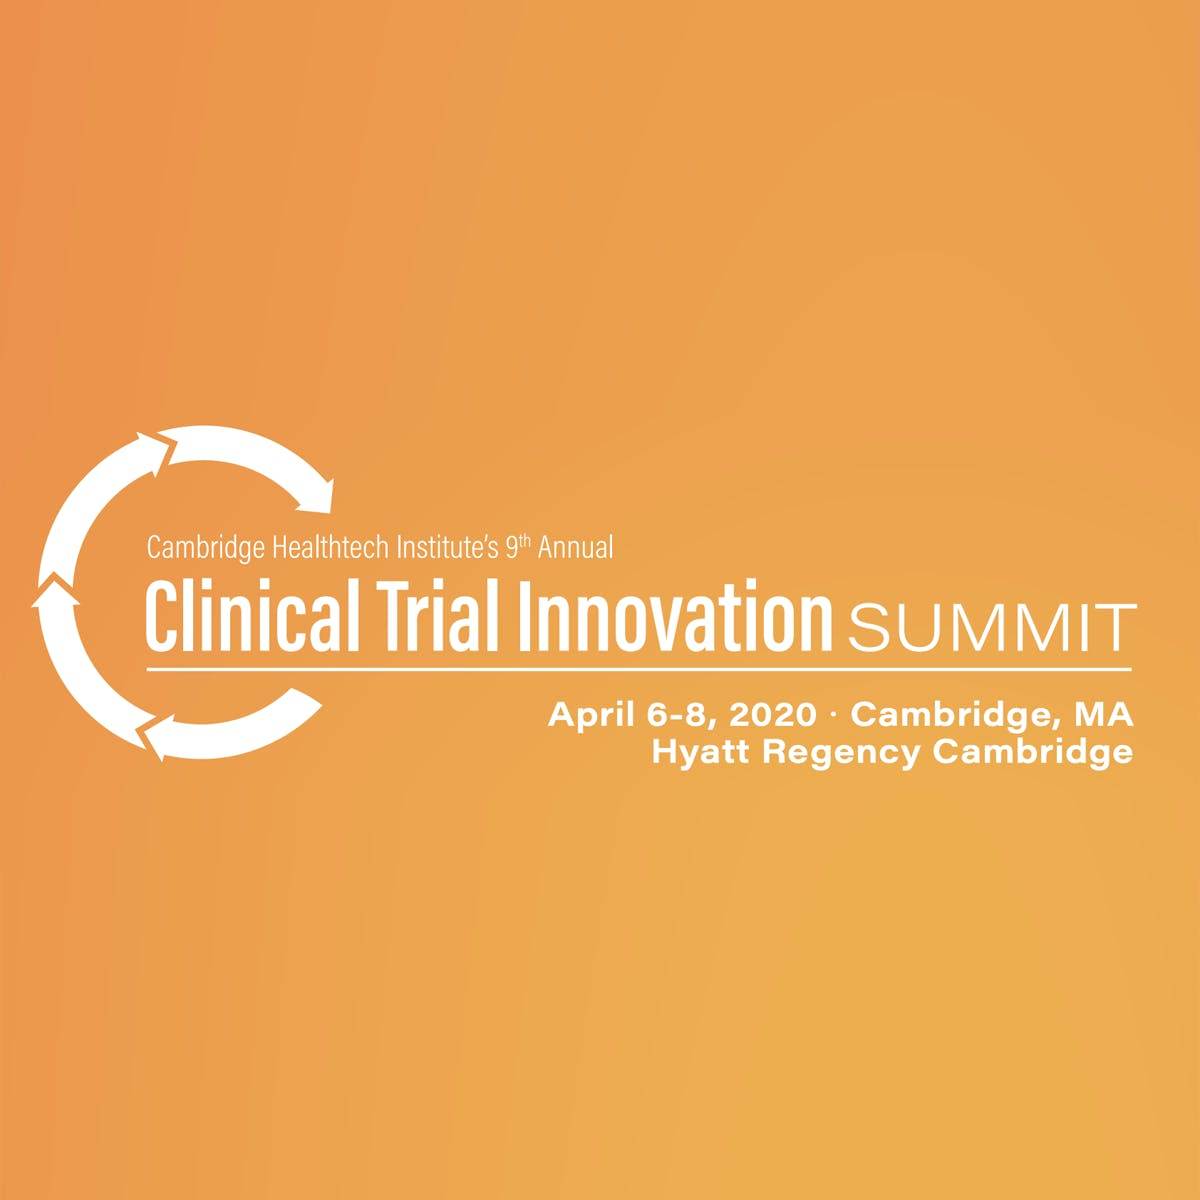 Meet Teckro at CHI's Clinical Trial Innovation Summit, April 6-8